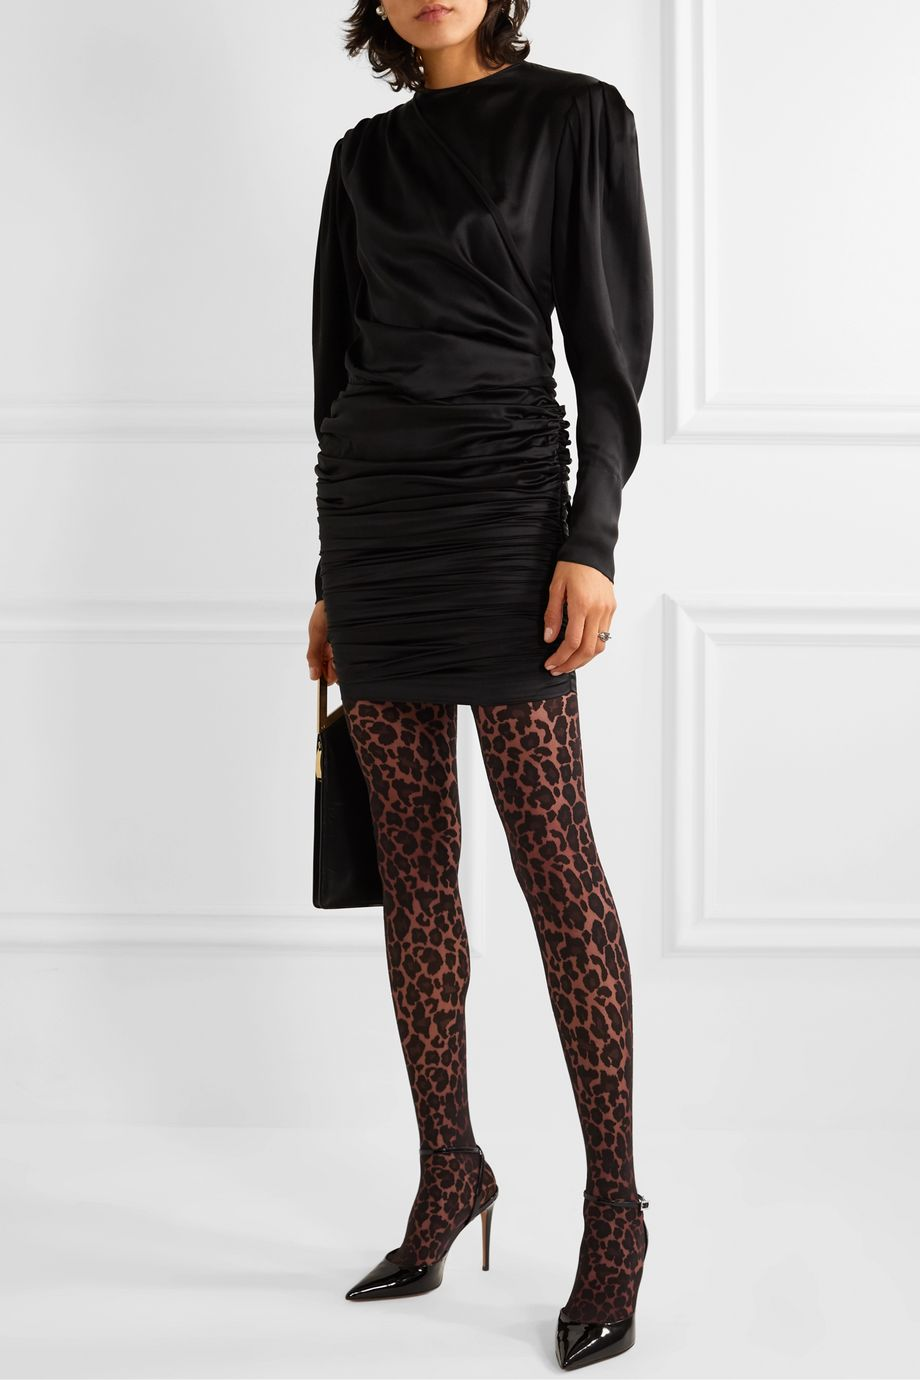 Wolford Leopard-print 20 denier tights